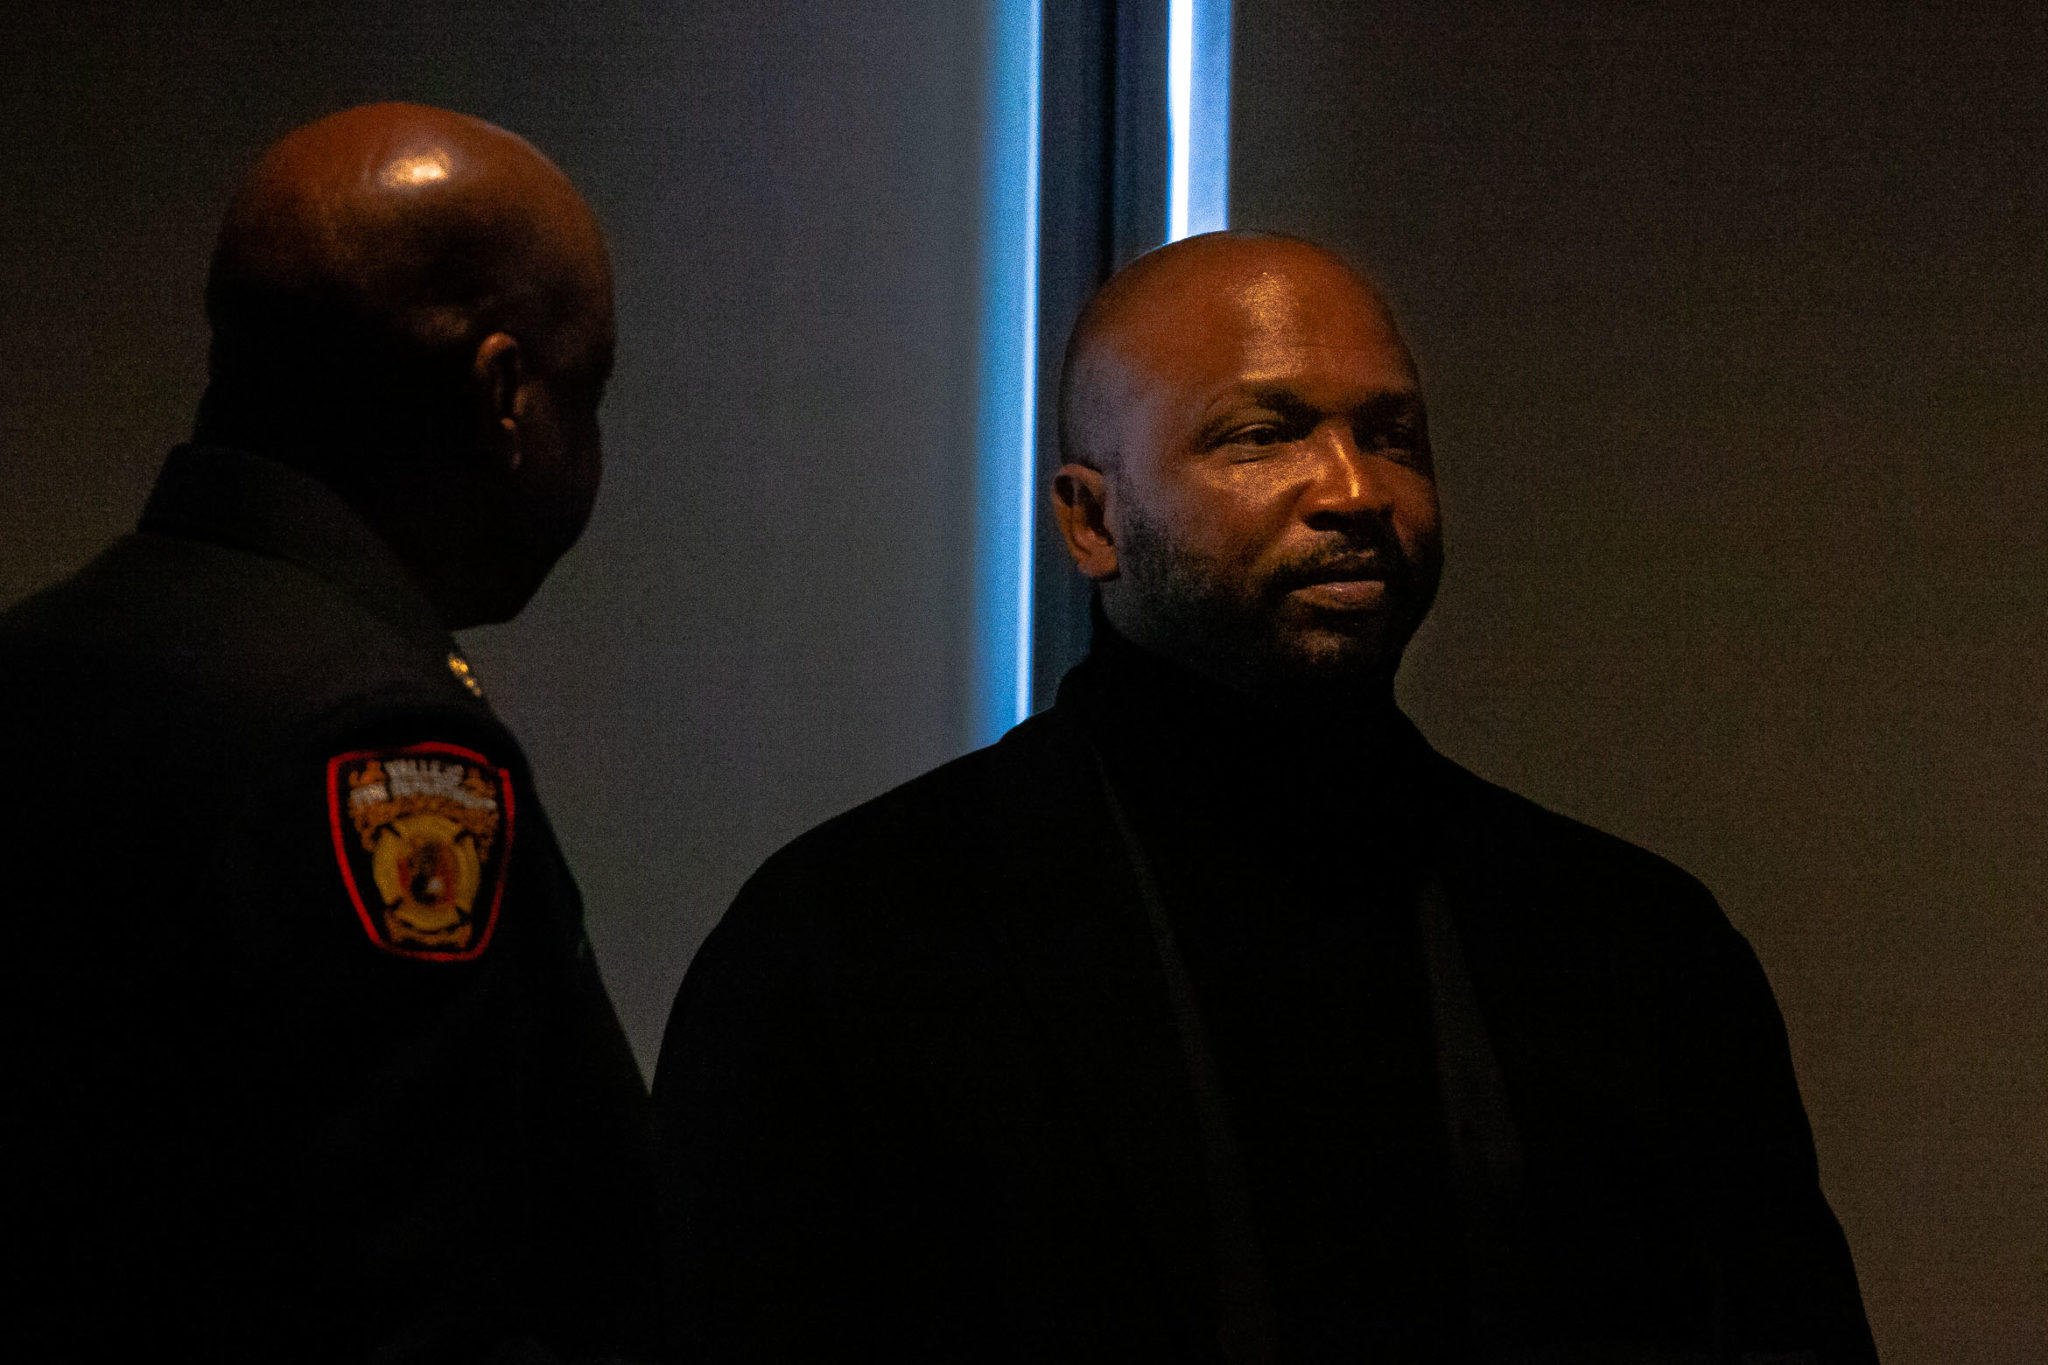 Vallejo City Councilmember Hakeem Brown, right, attends the swearing-in of Police Chief Shawny Williams last November. Elected to the council in 2018, Brown has rapidly consolidated political power by aligning himself with Vallejo's powerful public safety unions.